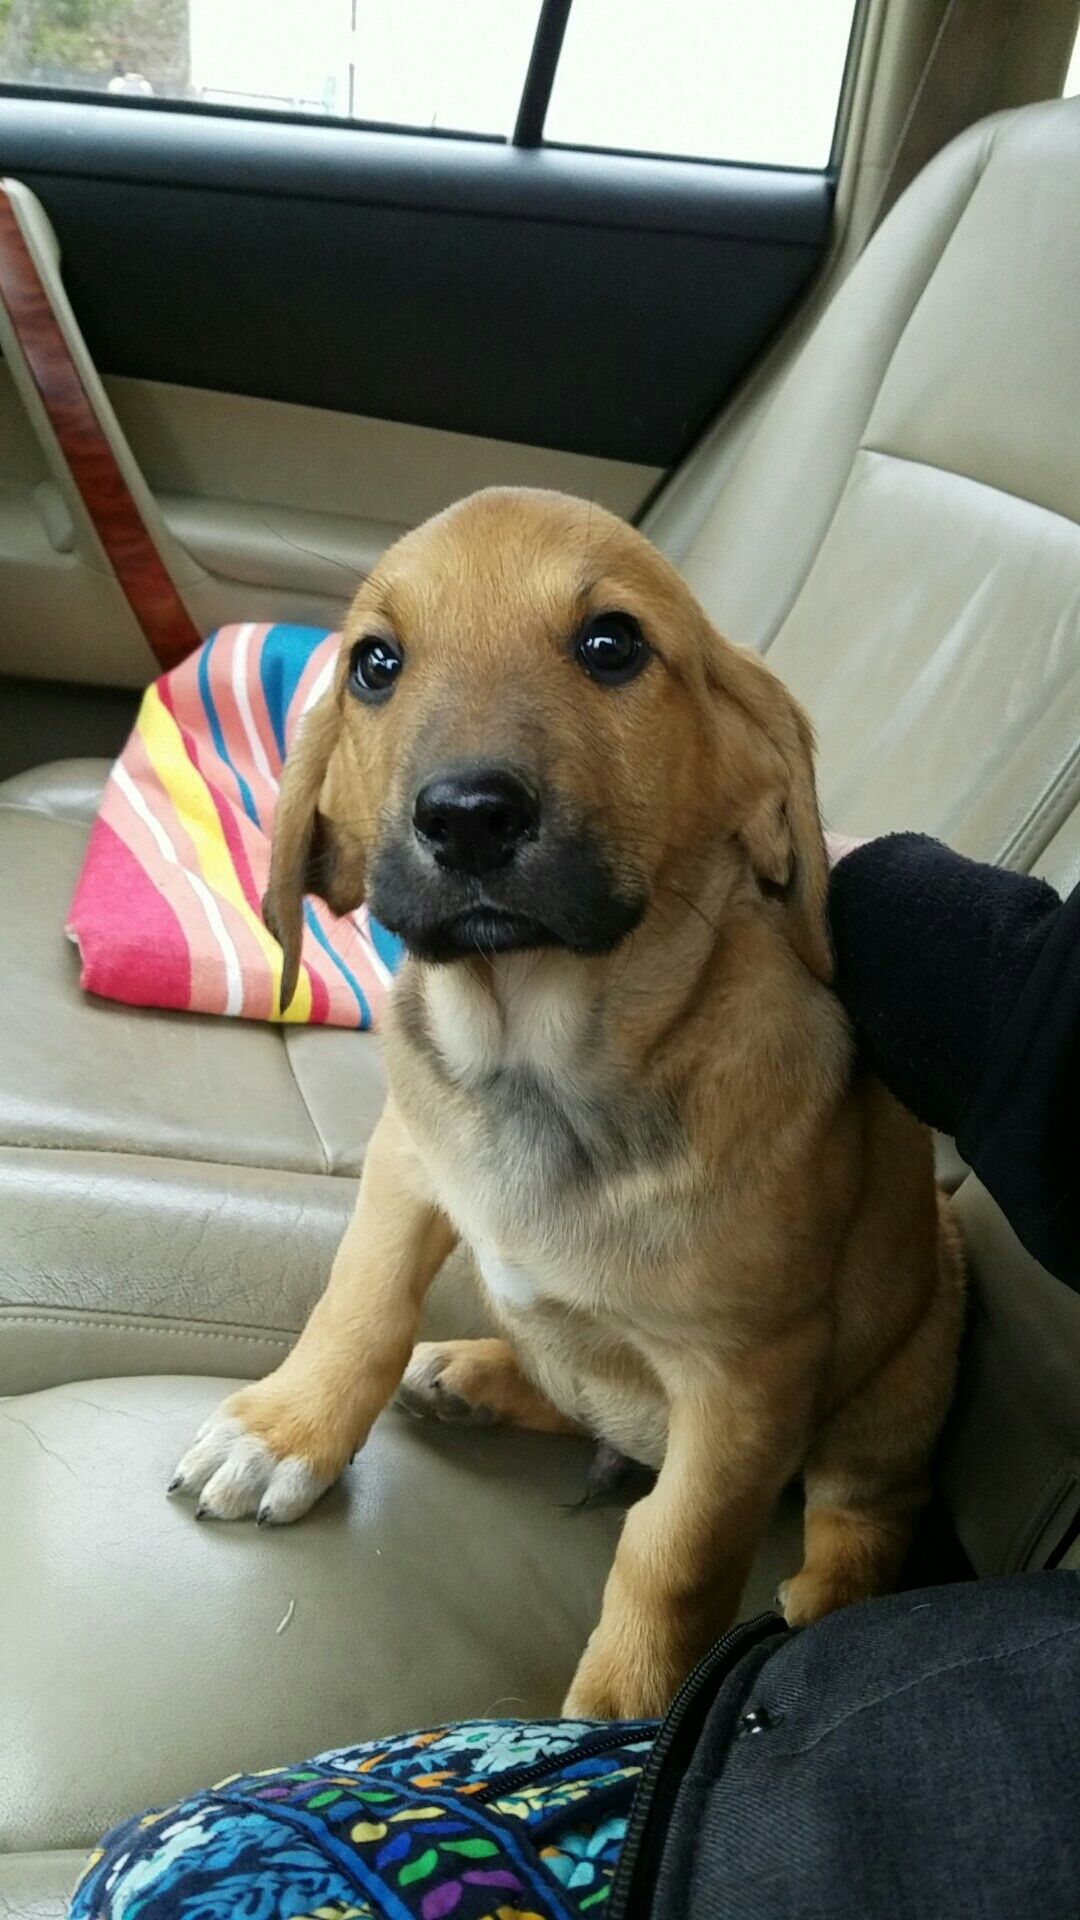 I picked up my new puppy this morning what should i name